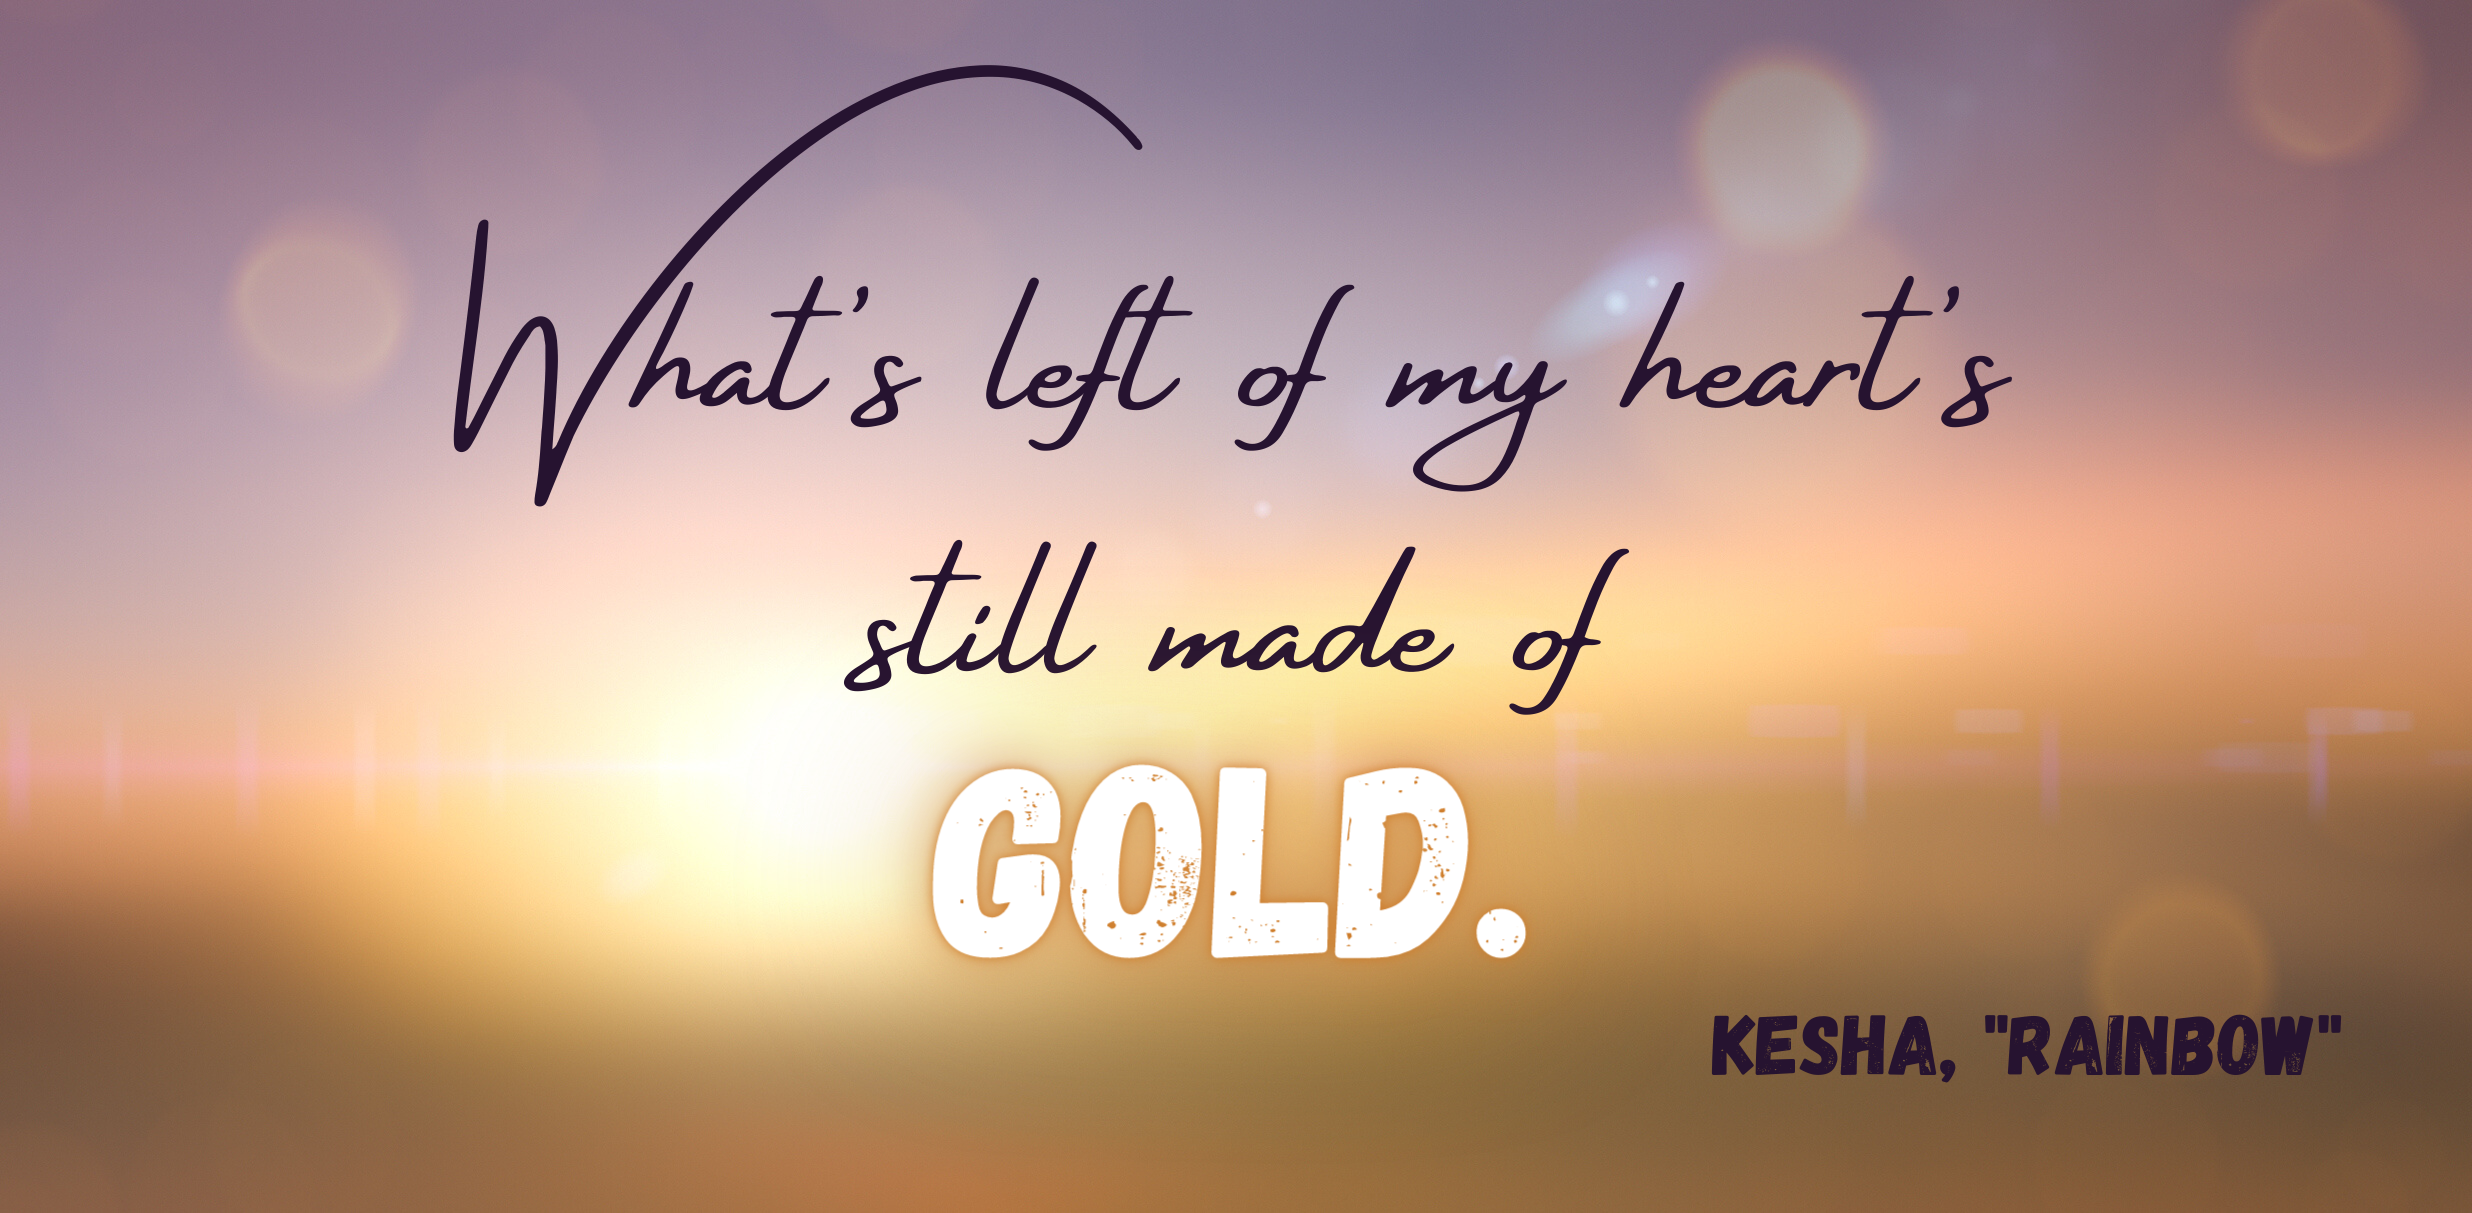 """""""What's left of my heart's still made of gold"""" by Kesha over orbs of blurry light"""